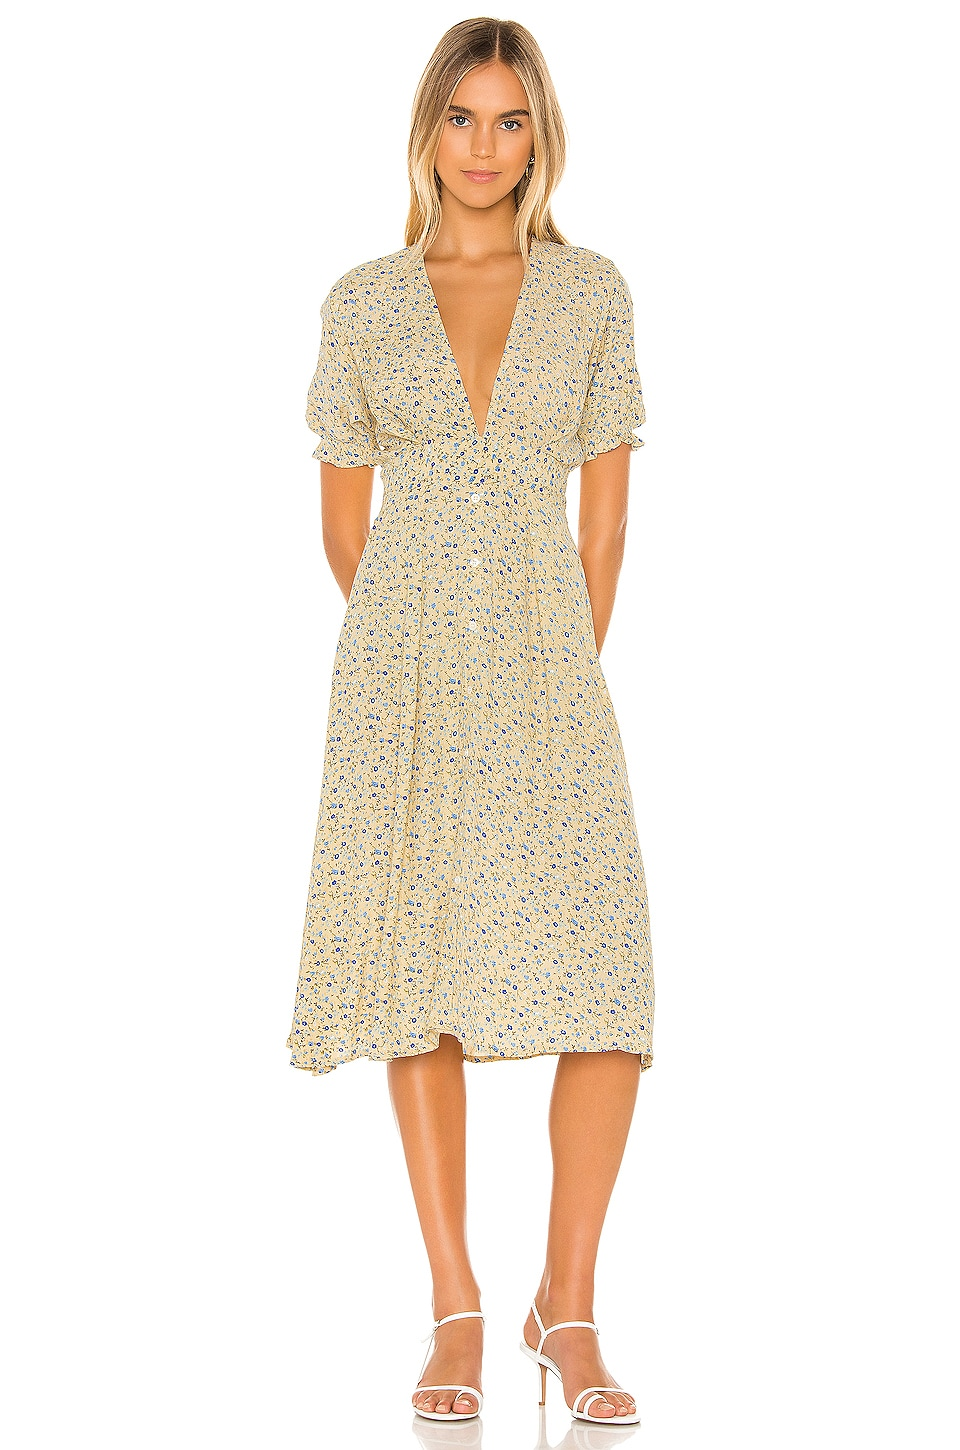 FAITHFULL THE BRAND Farah Dress in Vintage Yellow Medina Floral